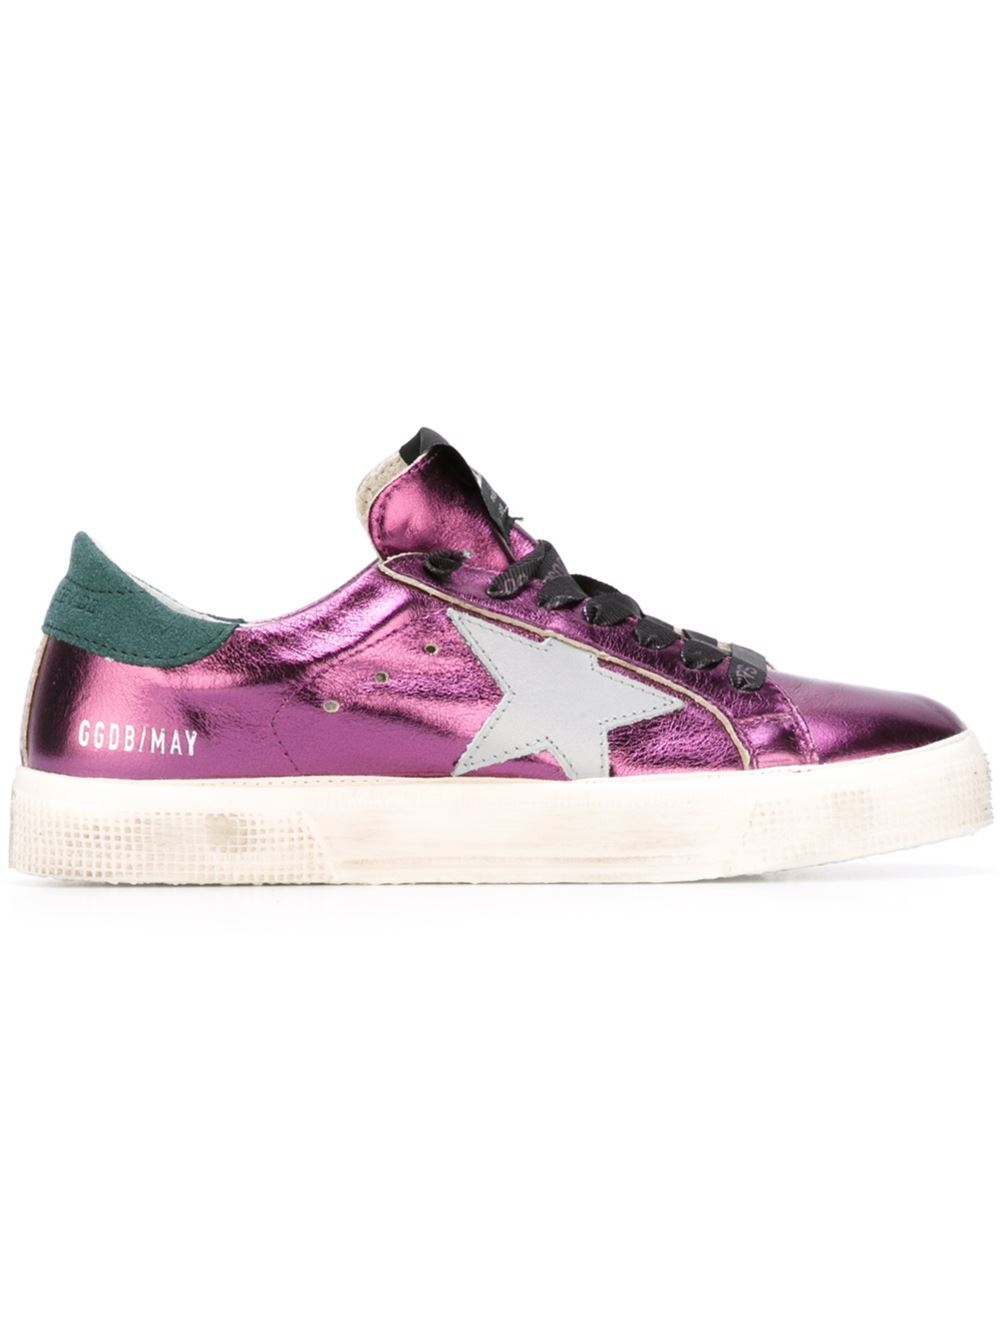 Golden Goose Women May Sneakers In Purple Leather With Silver Star